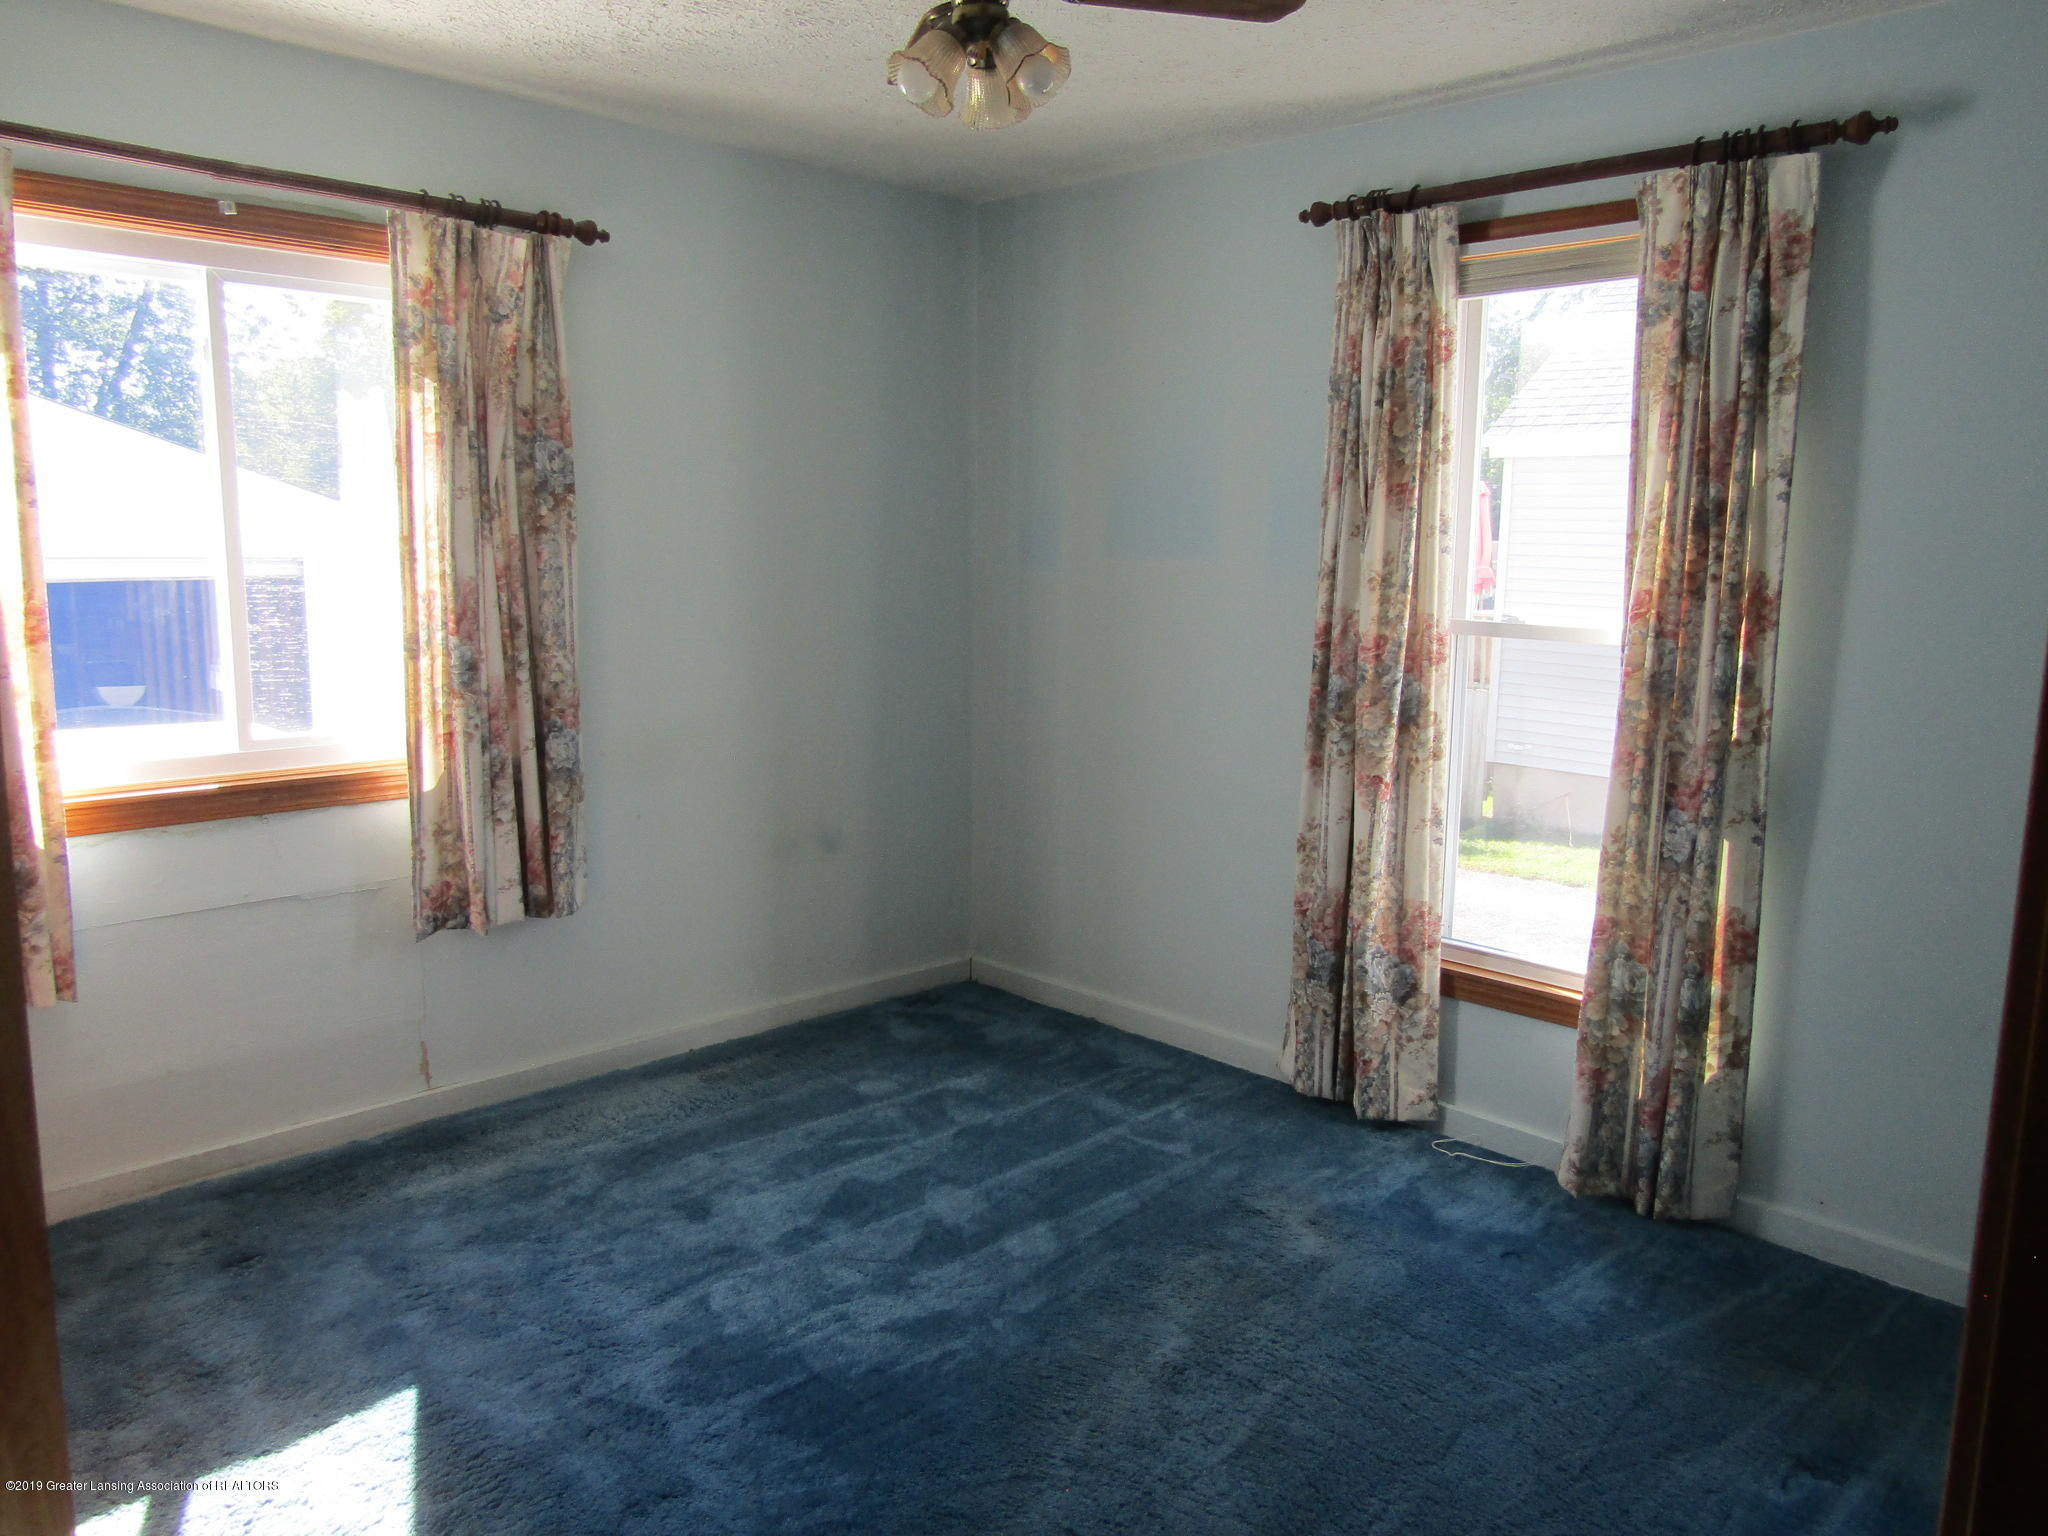 721 Pleasant St - Bedroom - 46